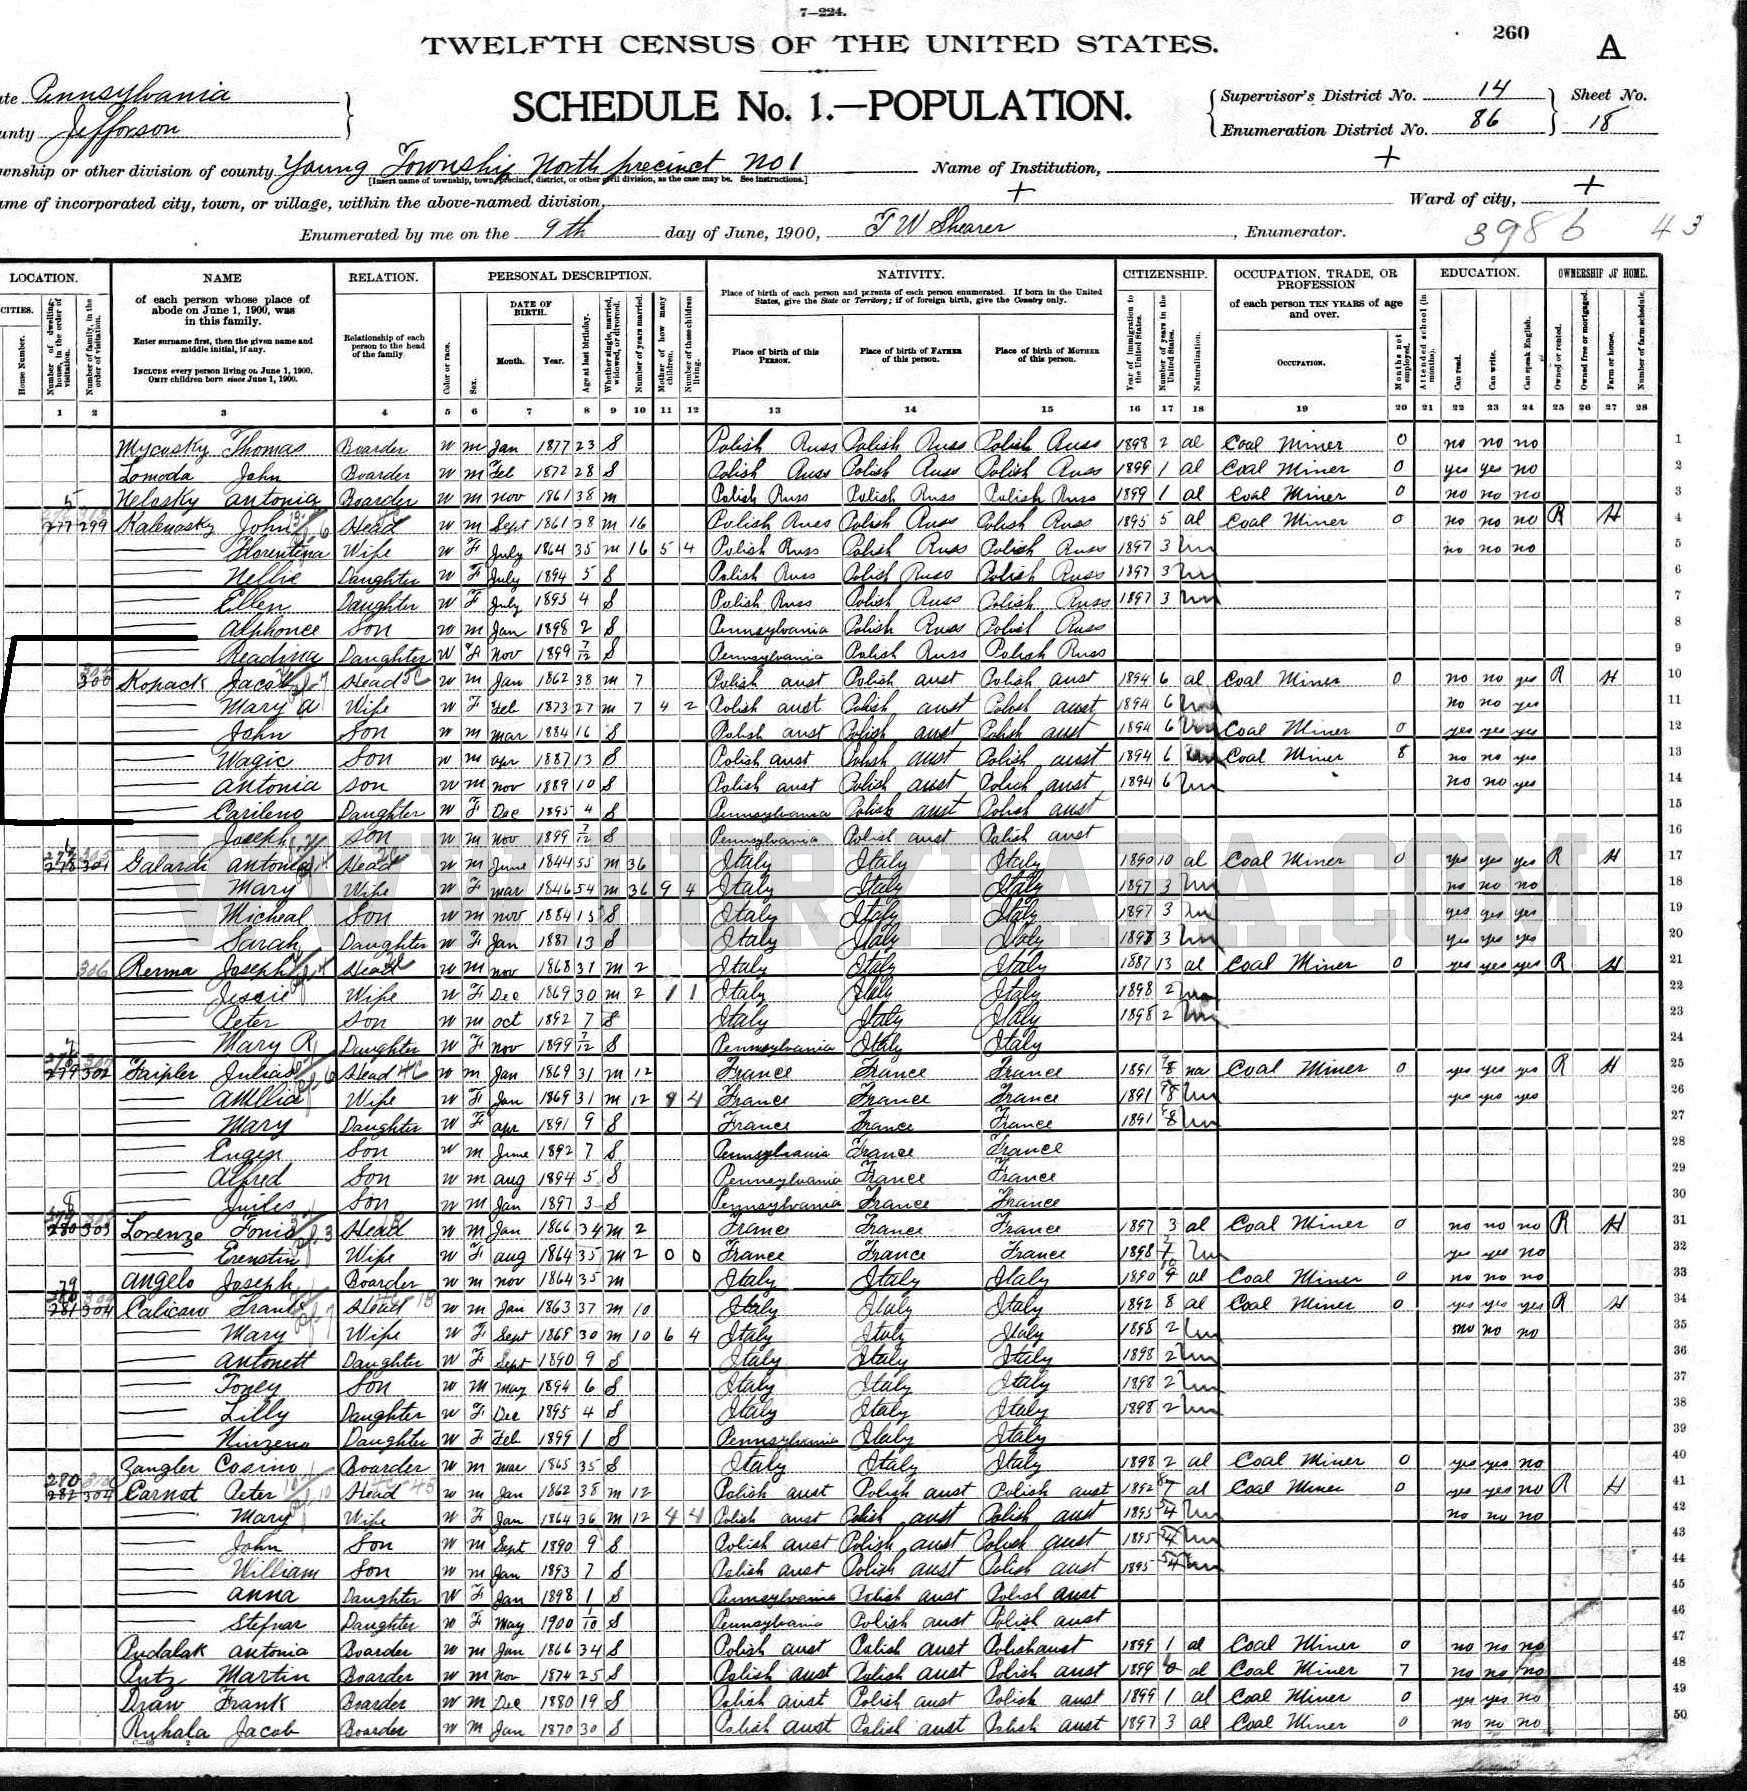 Duryea pennsylvania historical homepage 2012 1st update pa duryea 1898 baltimore sadie birth certificate pa duryea 1899 kopec ladislaus or wladyslaw baptism paper pa duryea 1900 baltimore mary 422 main st aiddatafo Image collections